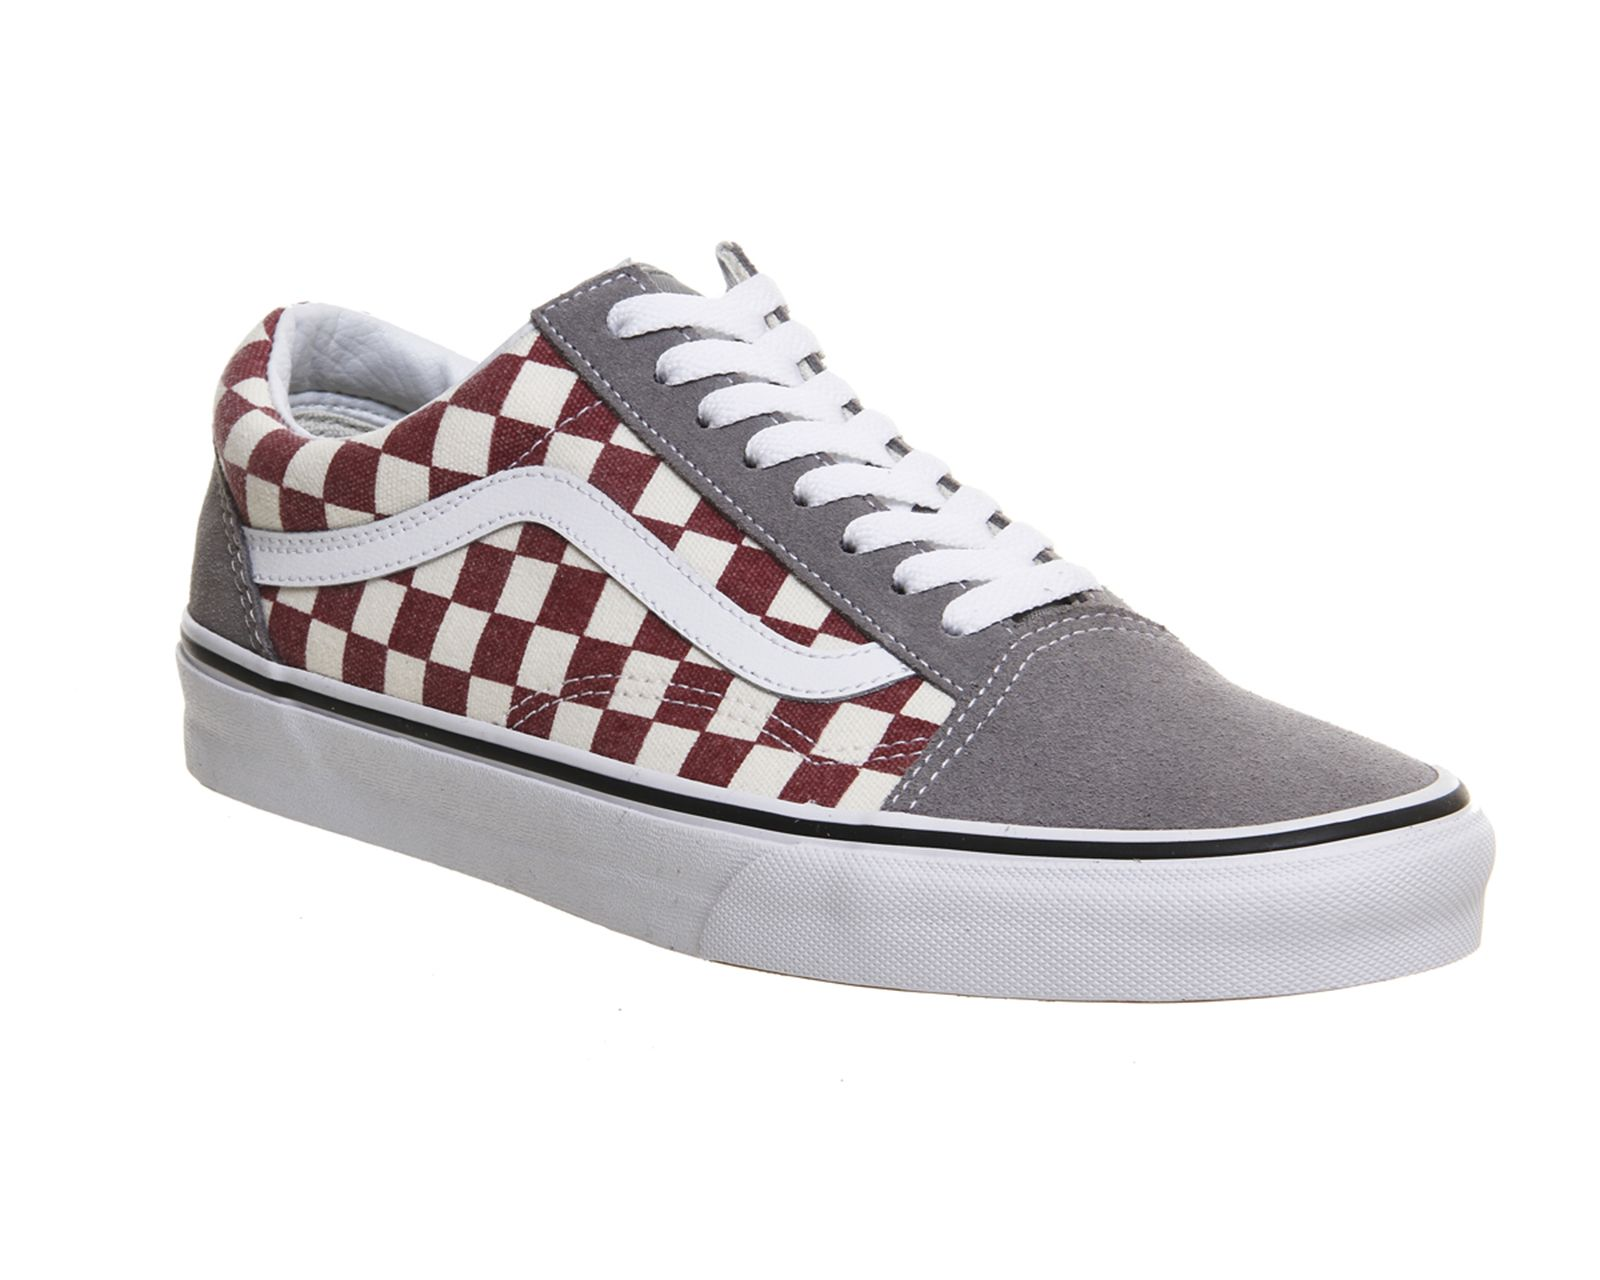 97fe0aa219fa checkered vans kohl s   Come and stroll!